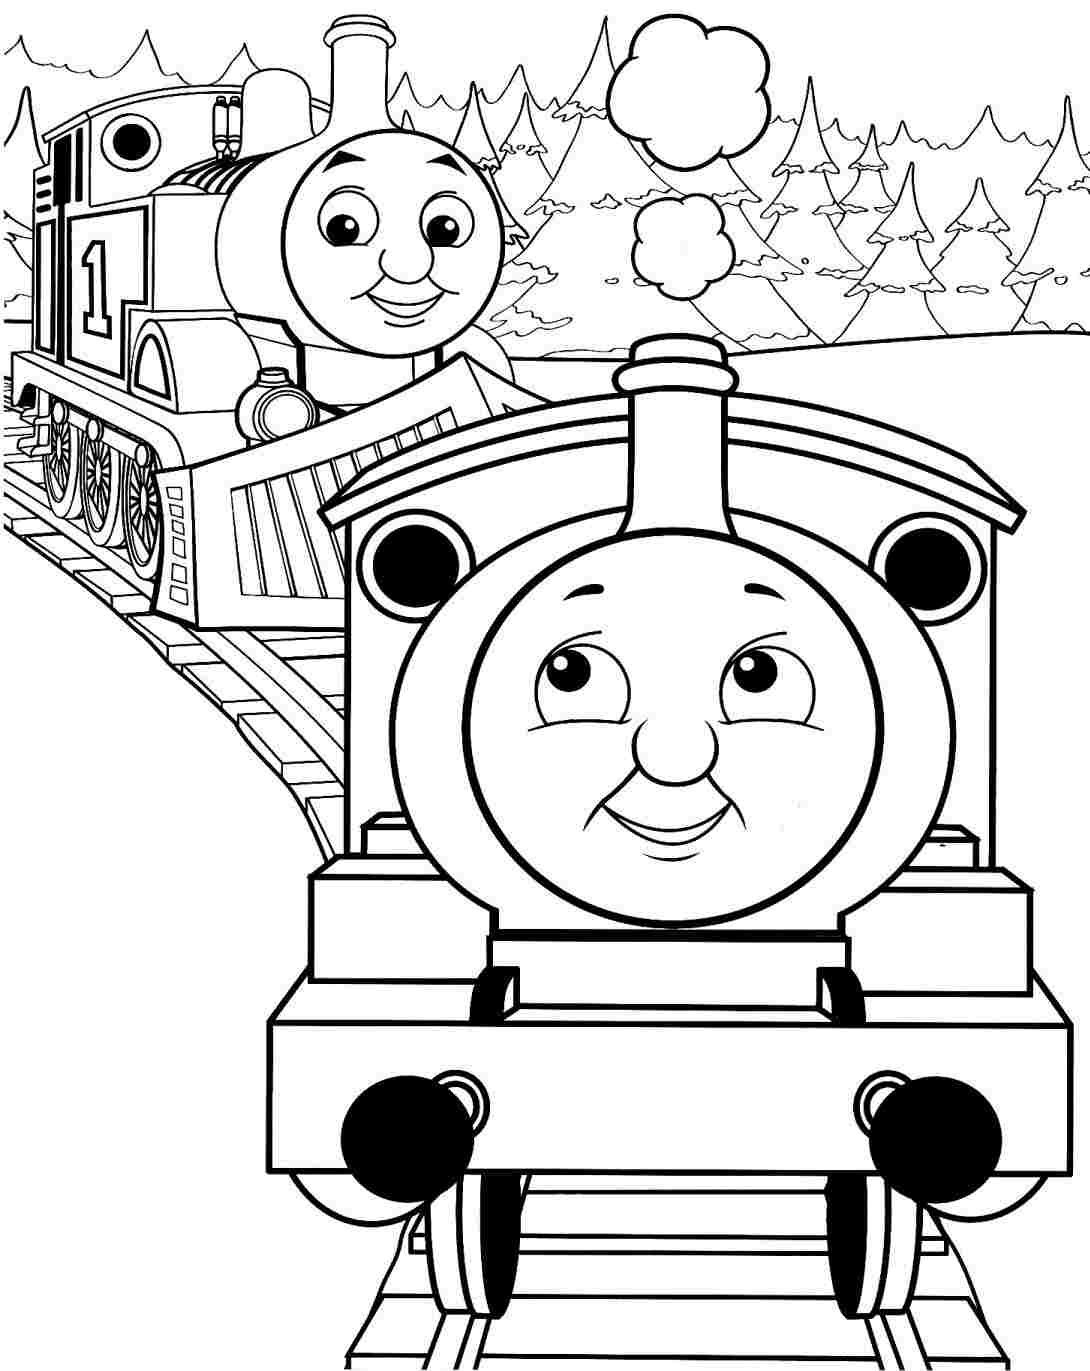 thomas the train color pages thomas the tank engine coloring pages to download and pages thomas color train the